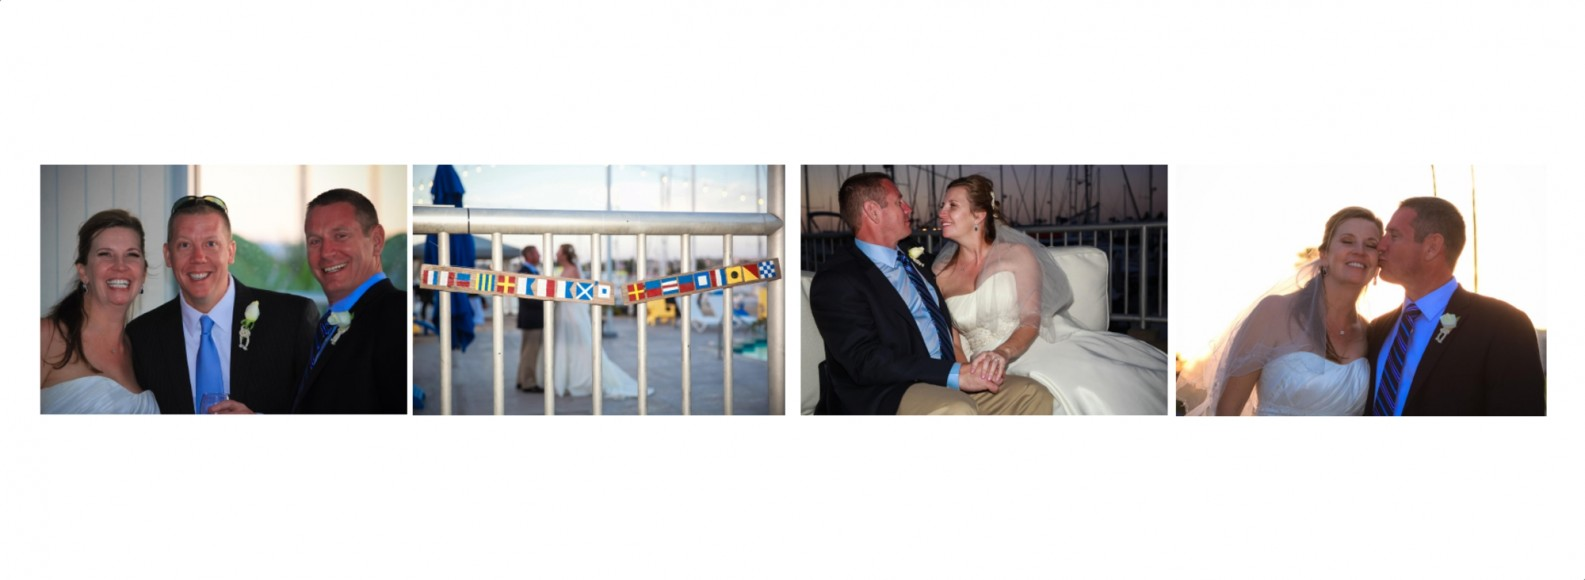 Laura and Davids Wedding Book - San Diego Yacht Wedding by Wedding Photographers Andrew Abouna - Pages 42-43